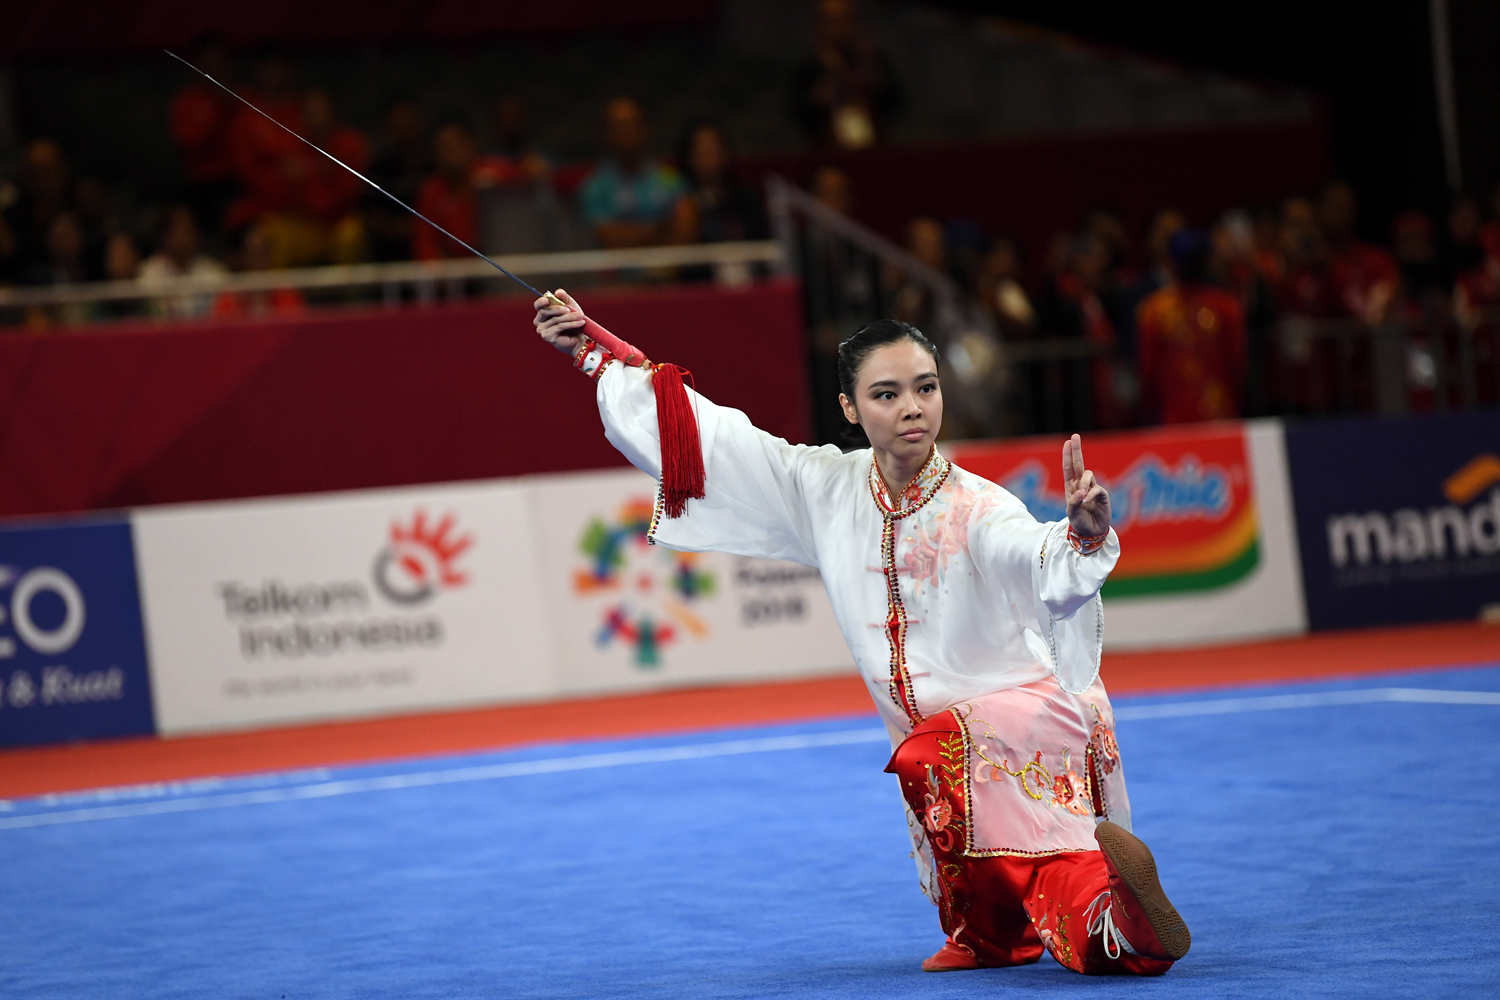 Atlet Indonesia Peraih Medali Emas Asian Games 2018, Lindswell